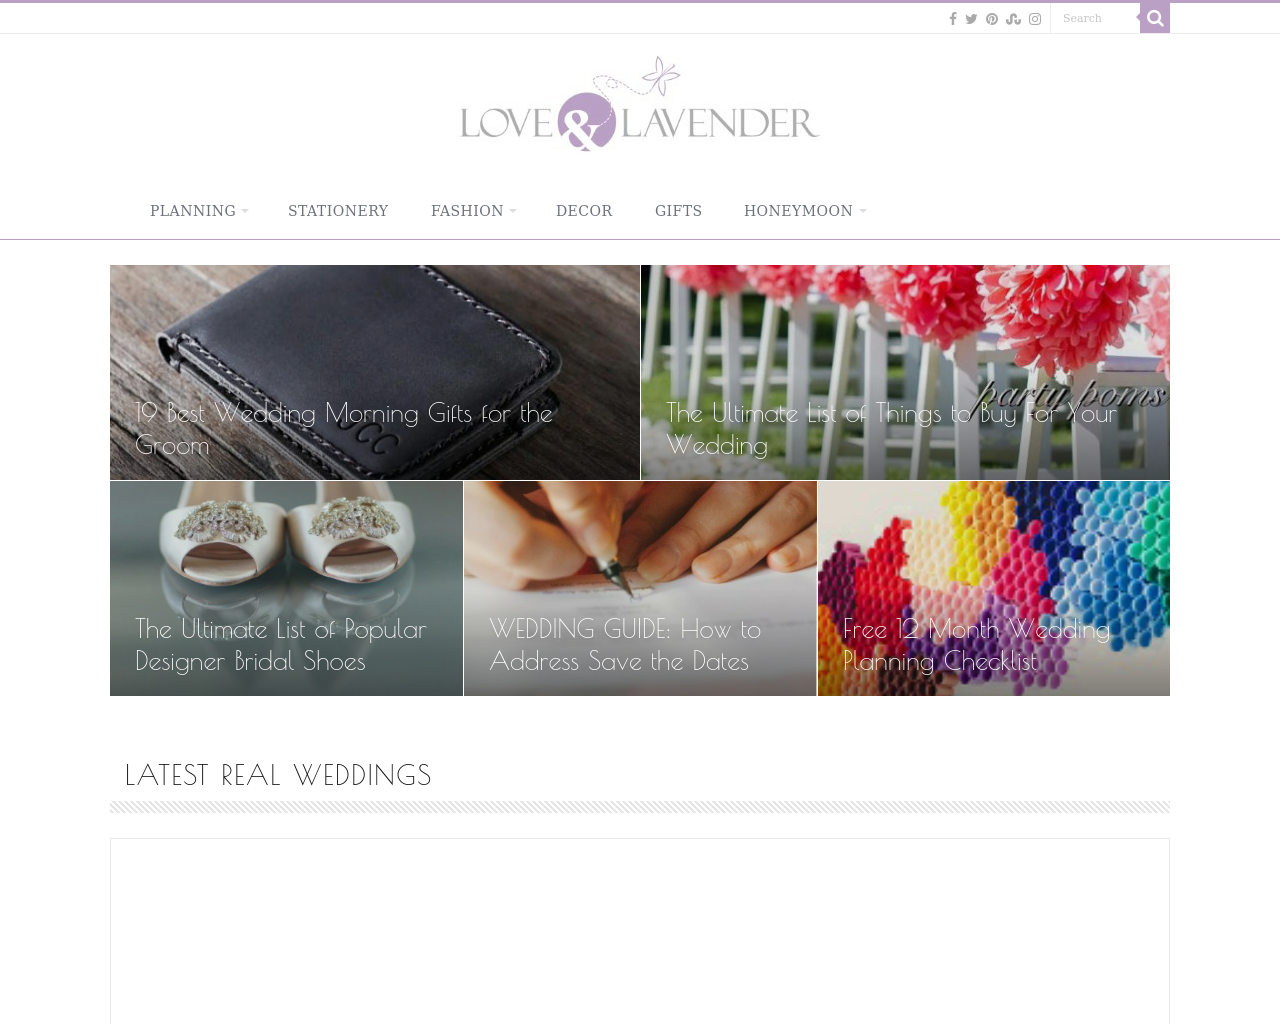 Loveandlavender-Advertising-Reviews-Pricing